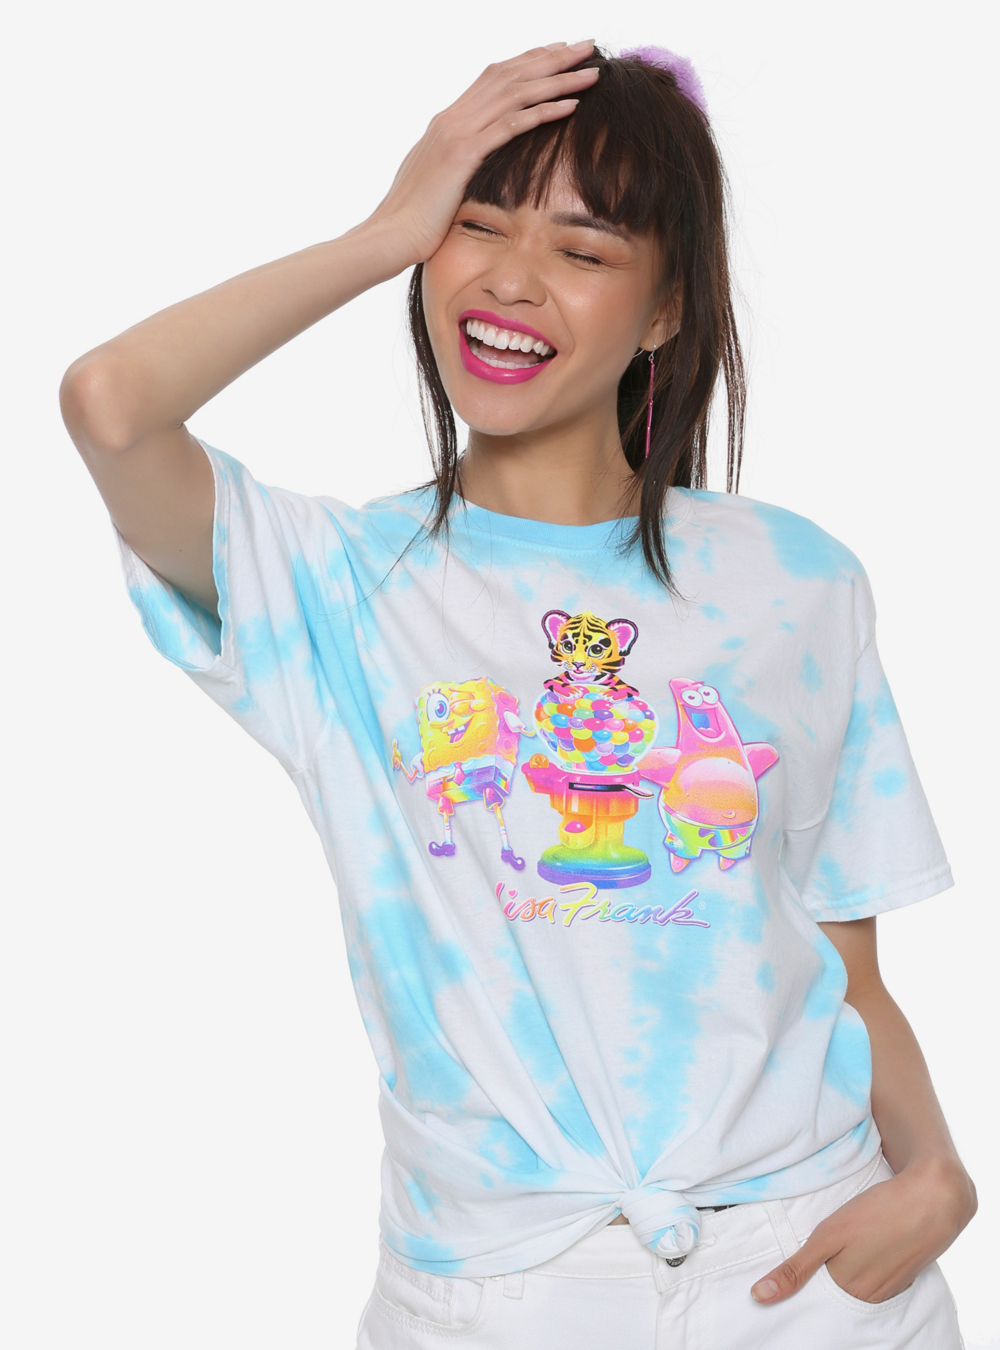 Girls Gumball Knotted Tee_$24.90.jpg